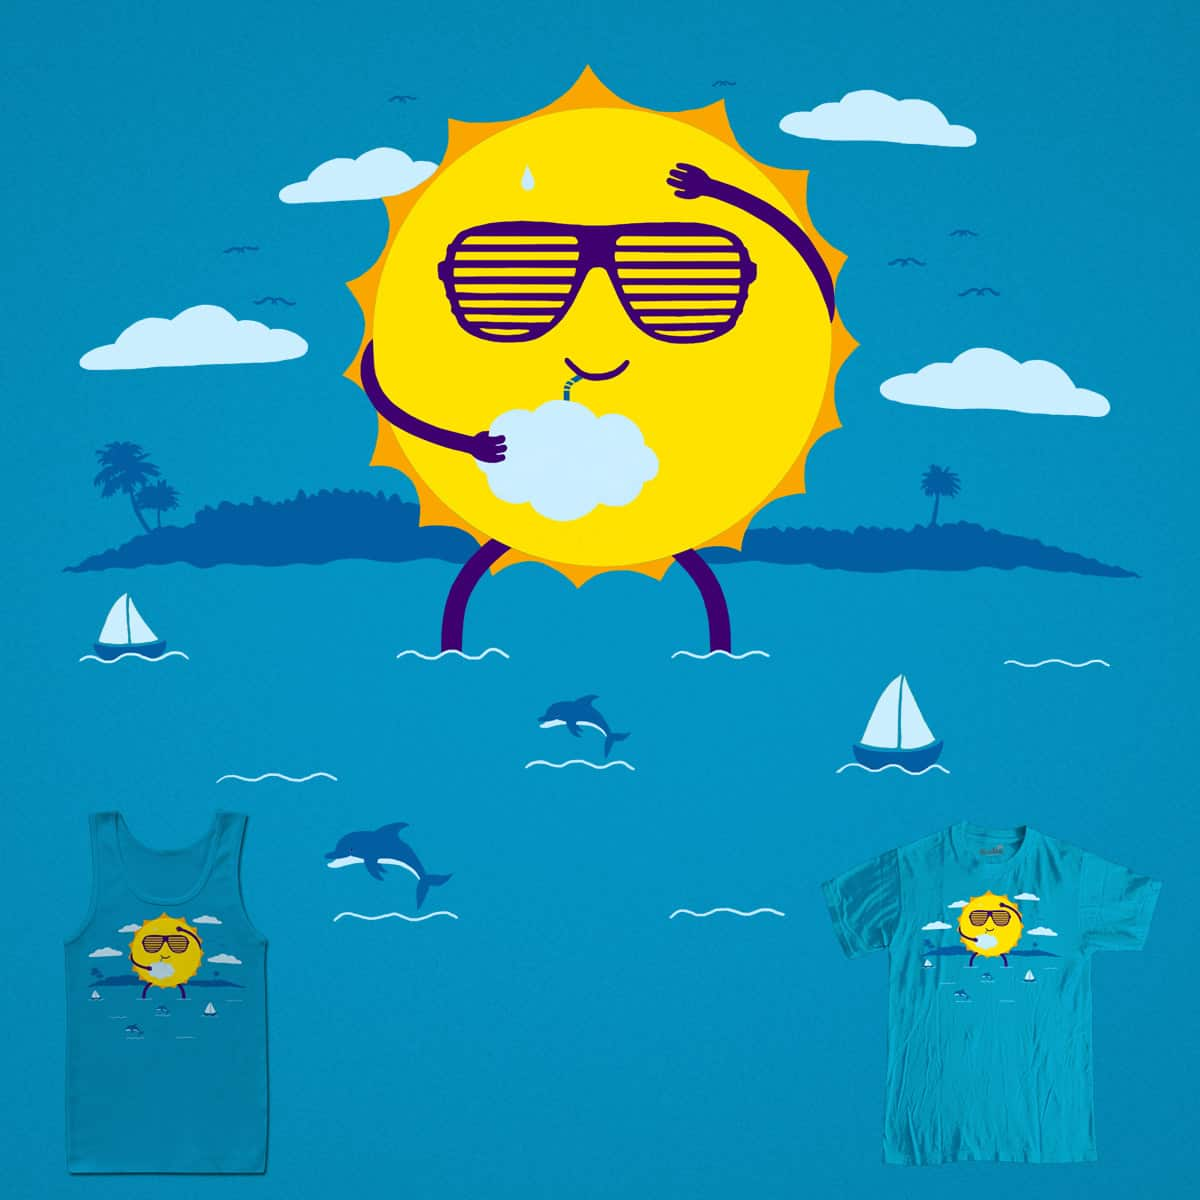 Hot Day by eikwox on Threadless